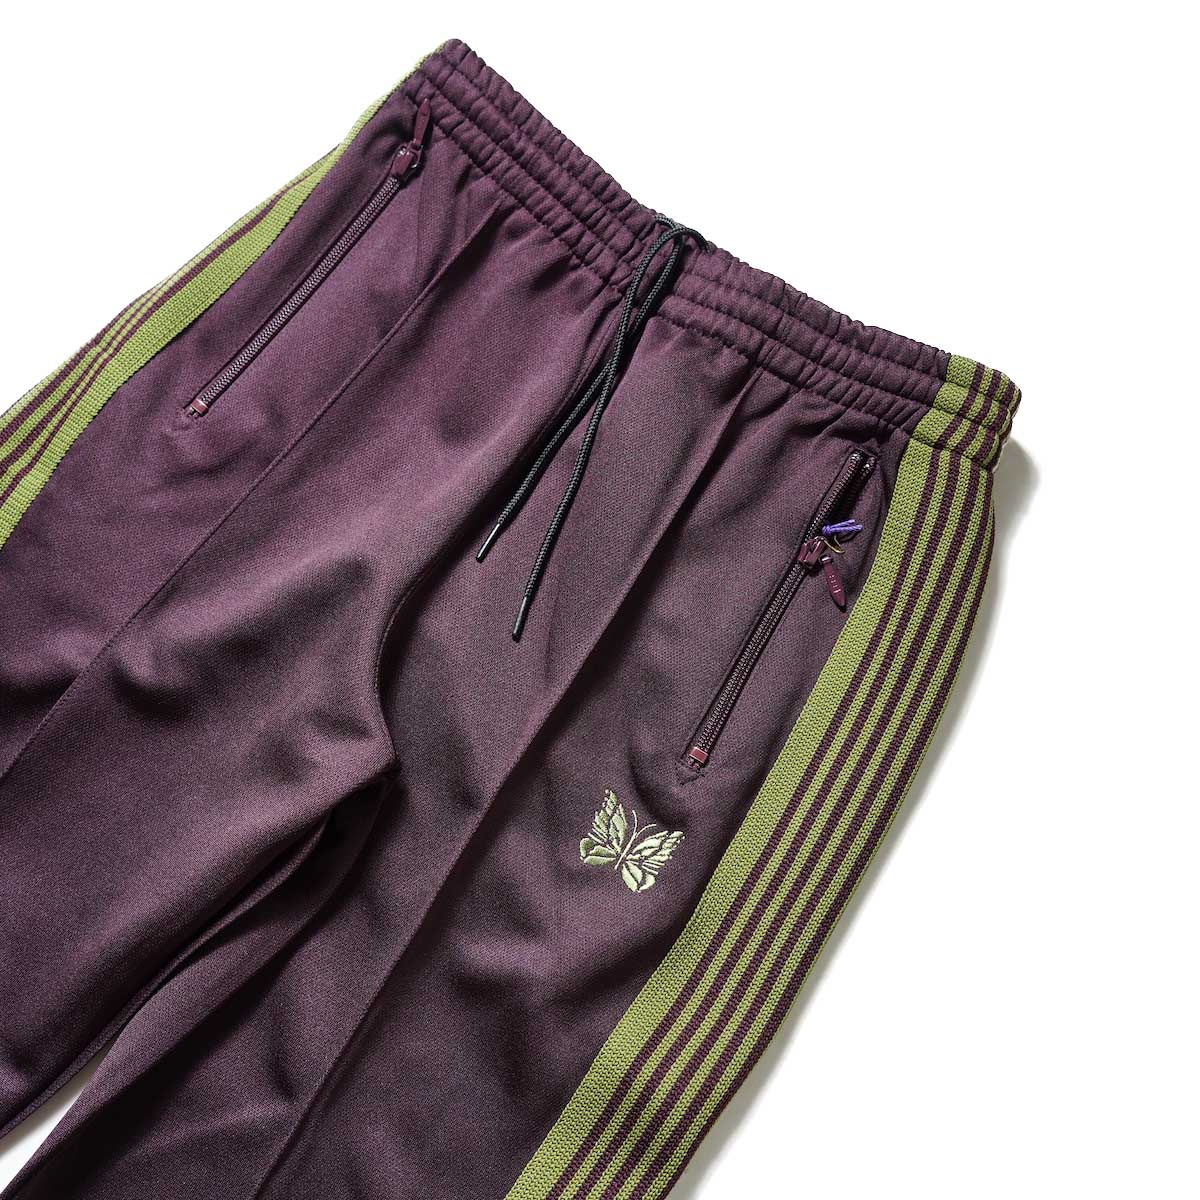 Needles / Boot-Cut Track Pant -Poly Smooth (Maroon)ウエスト